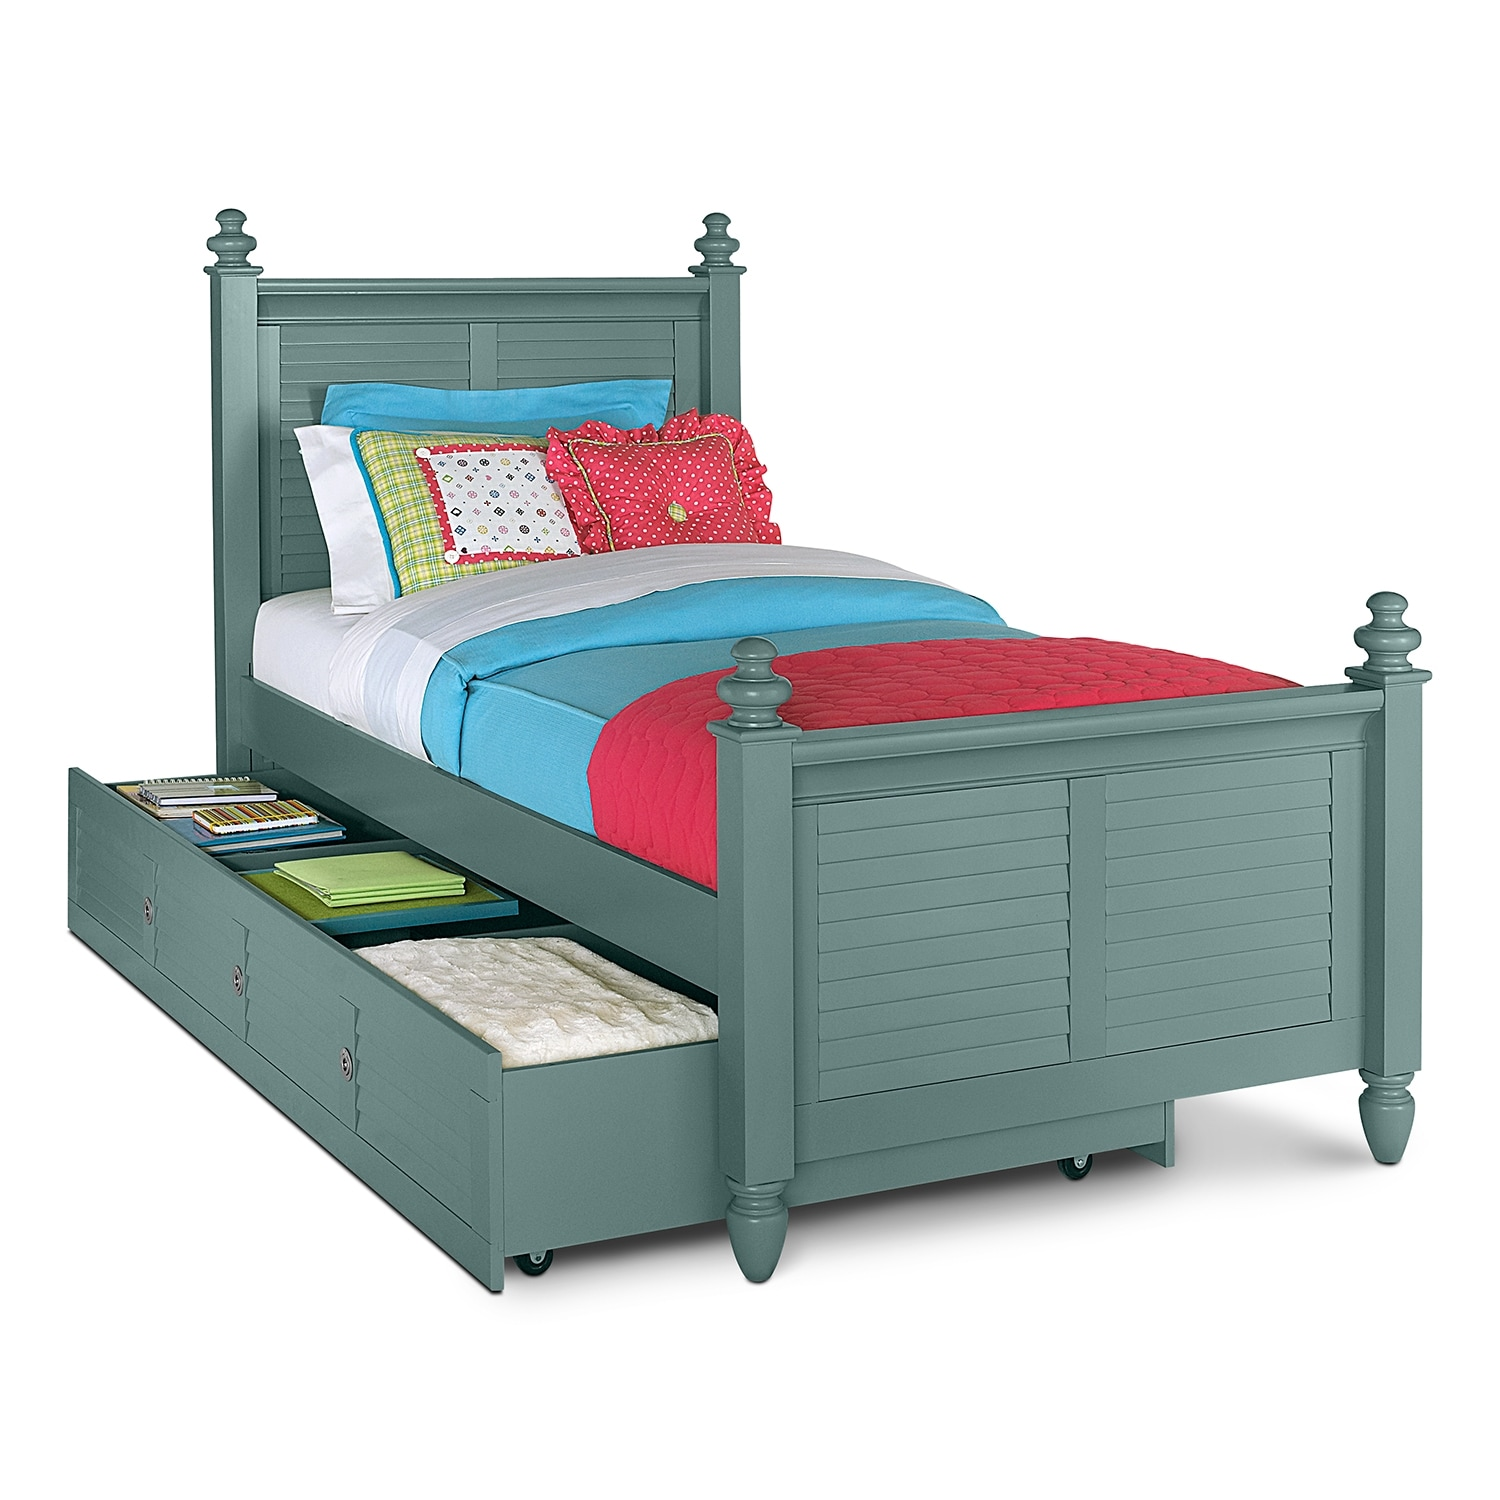 Seaside blue kids furniture full bed with trundle value for Kids bed design